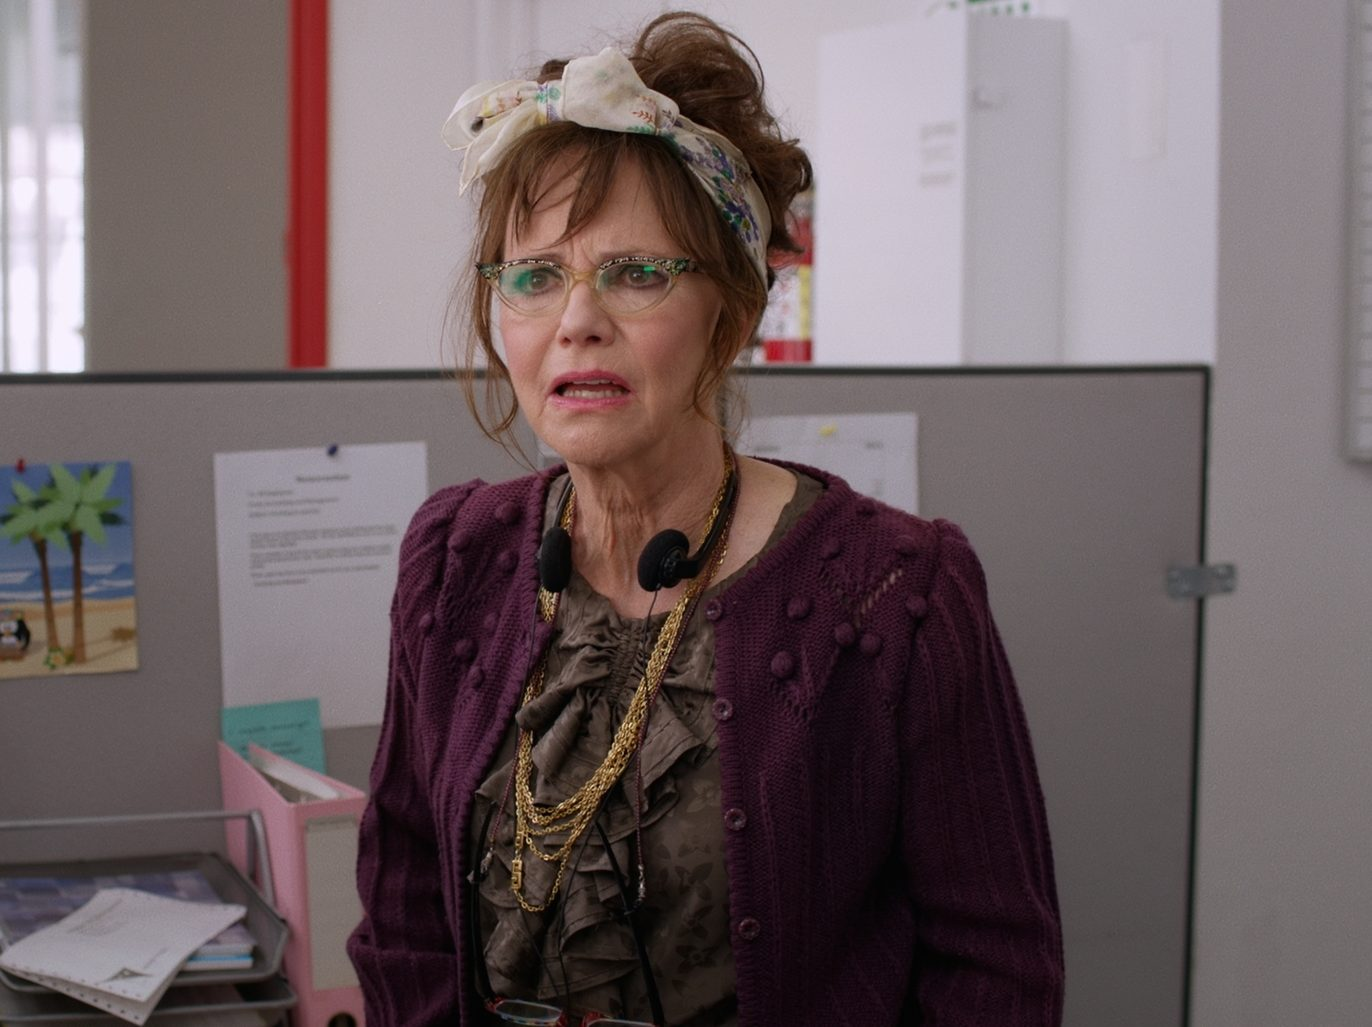 sal e1604659950616 20 Things You Never Knew About Sally Field